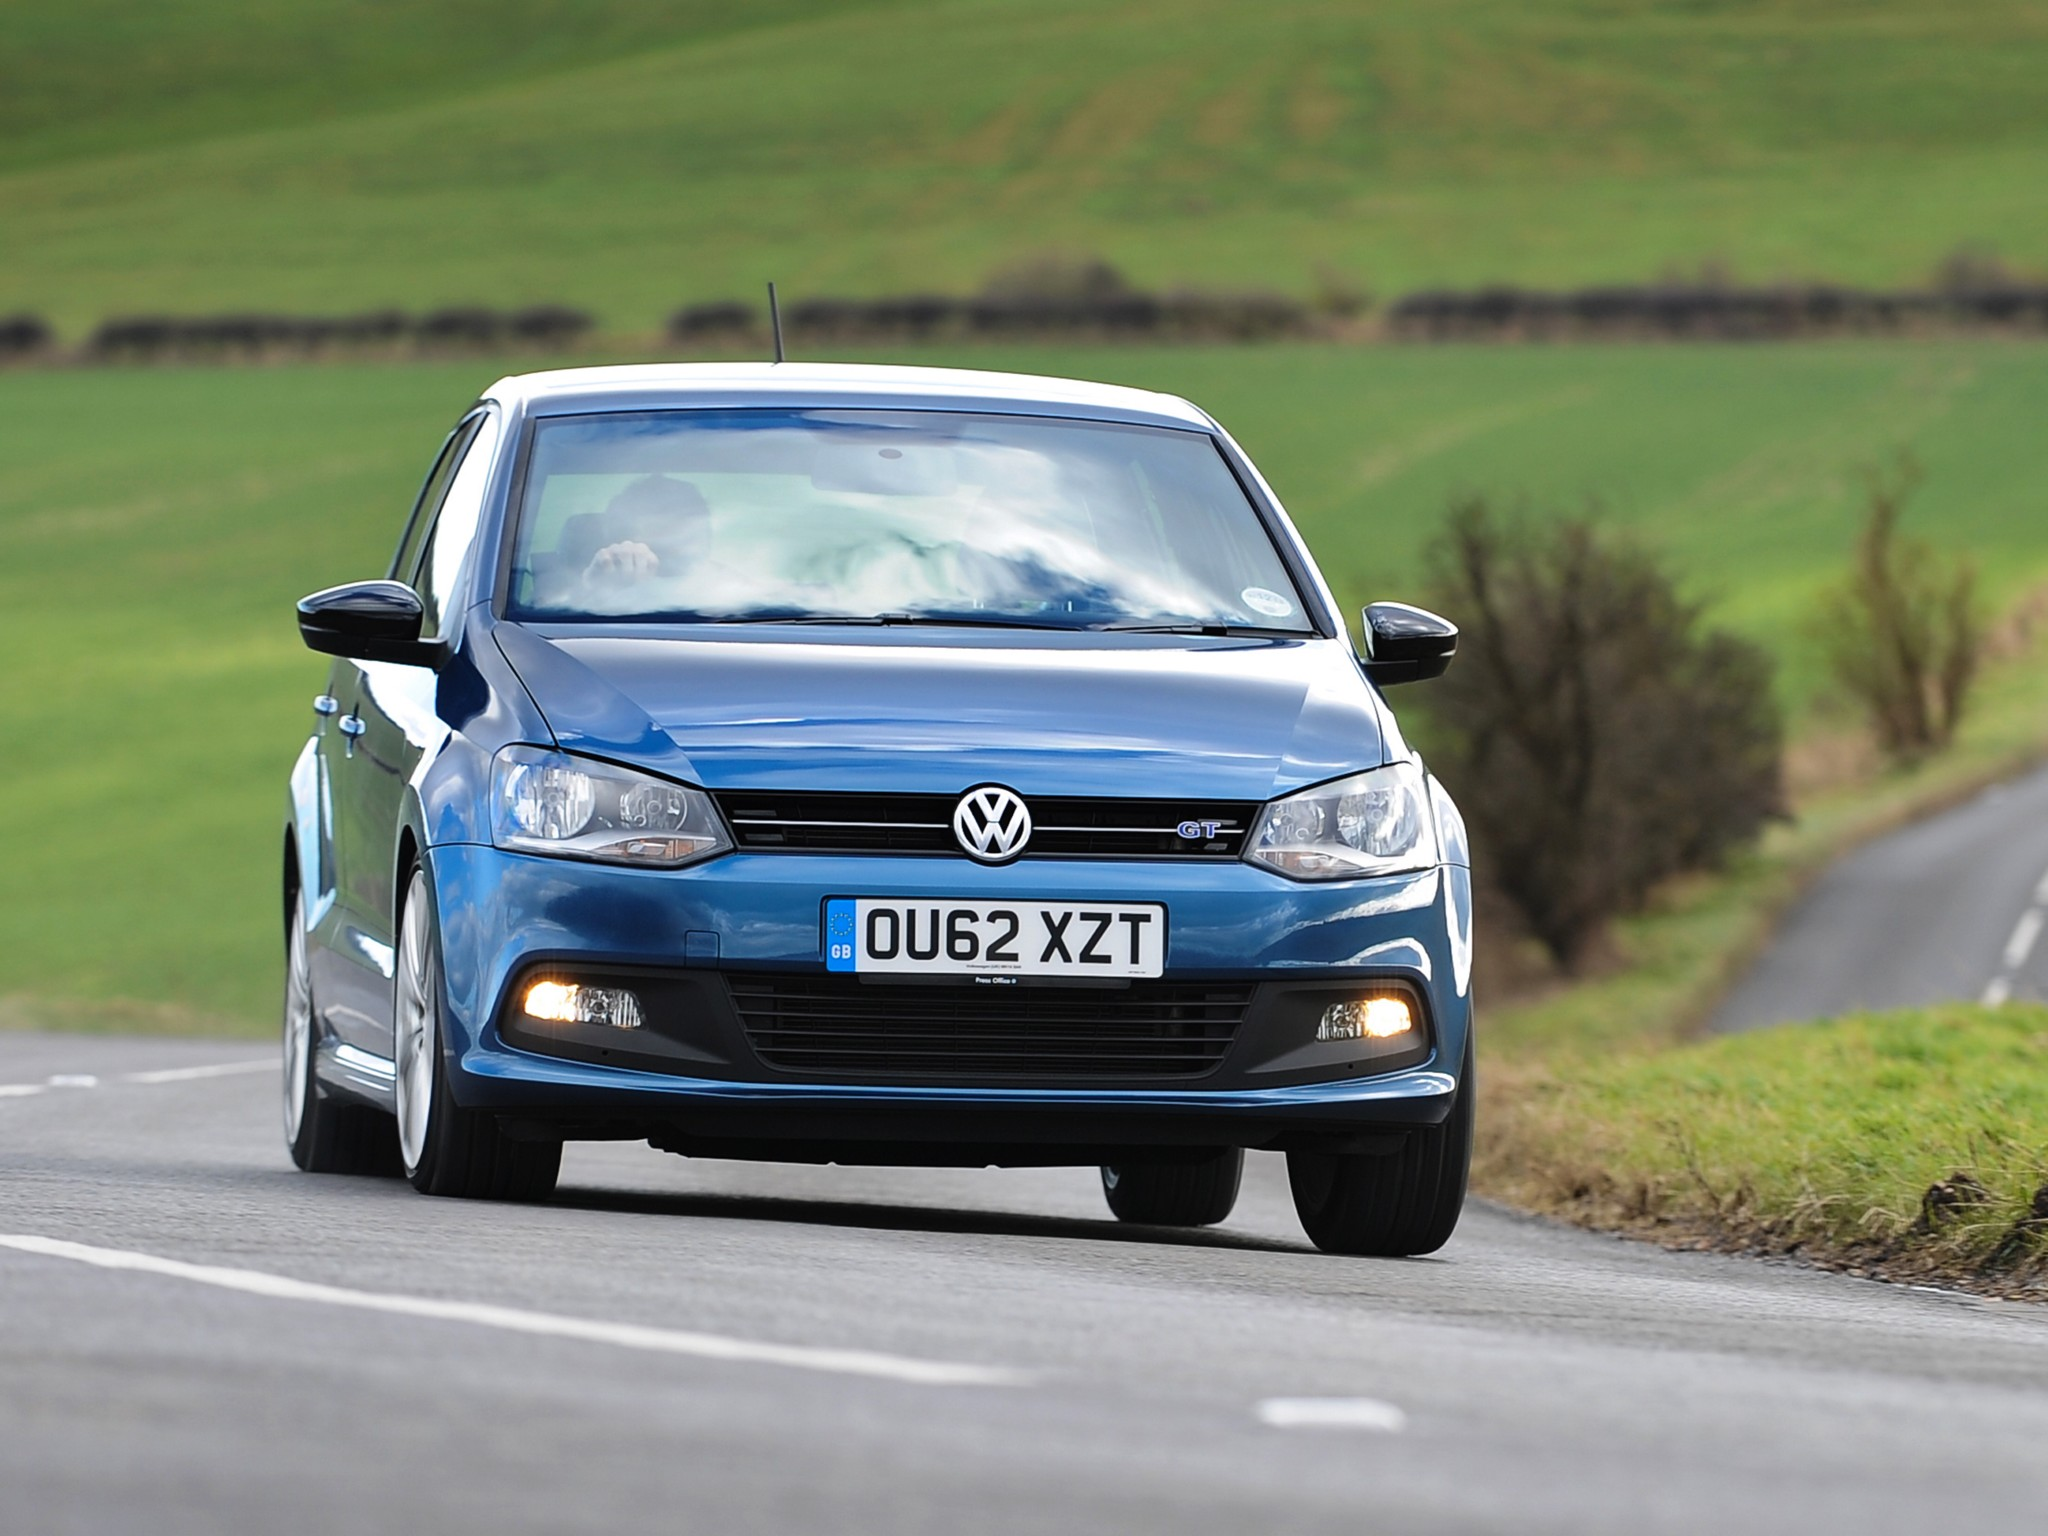 New Polo BlueGT: 150 HP Fuel Sipper Goes on Sale in Europe - autoevolution